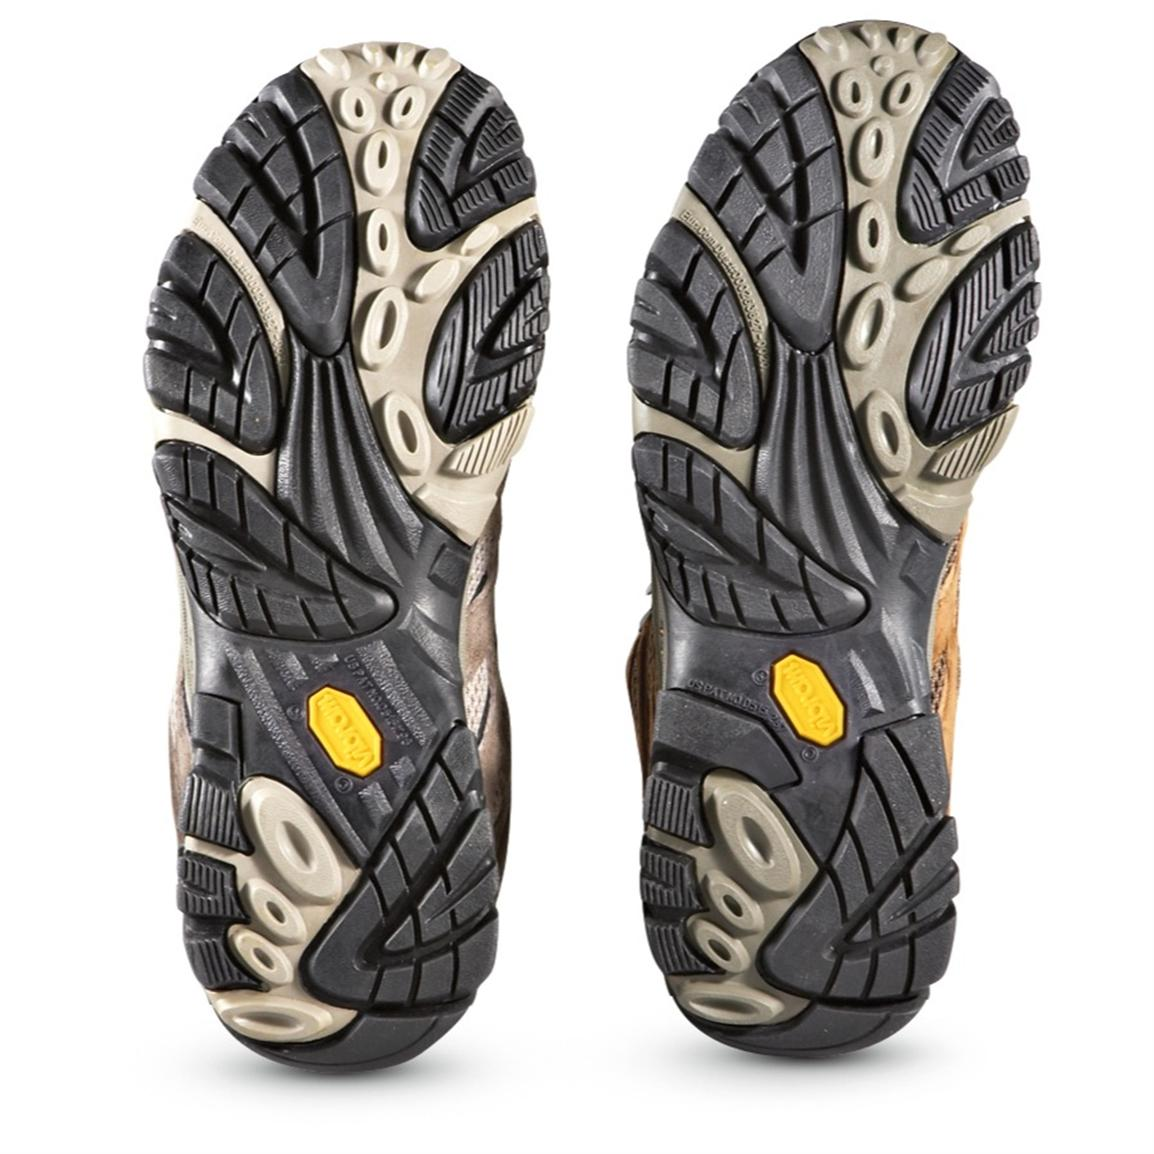 Vibram Multi-Sport Sole offers superior traction